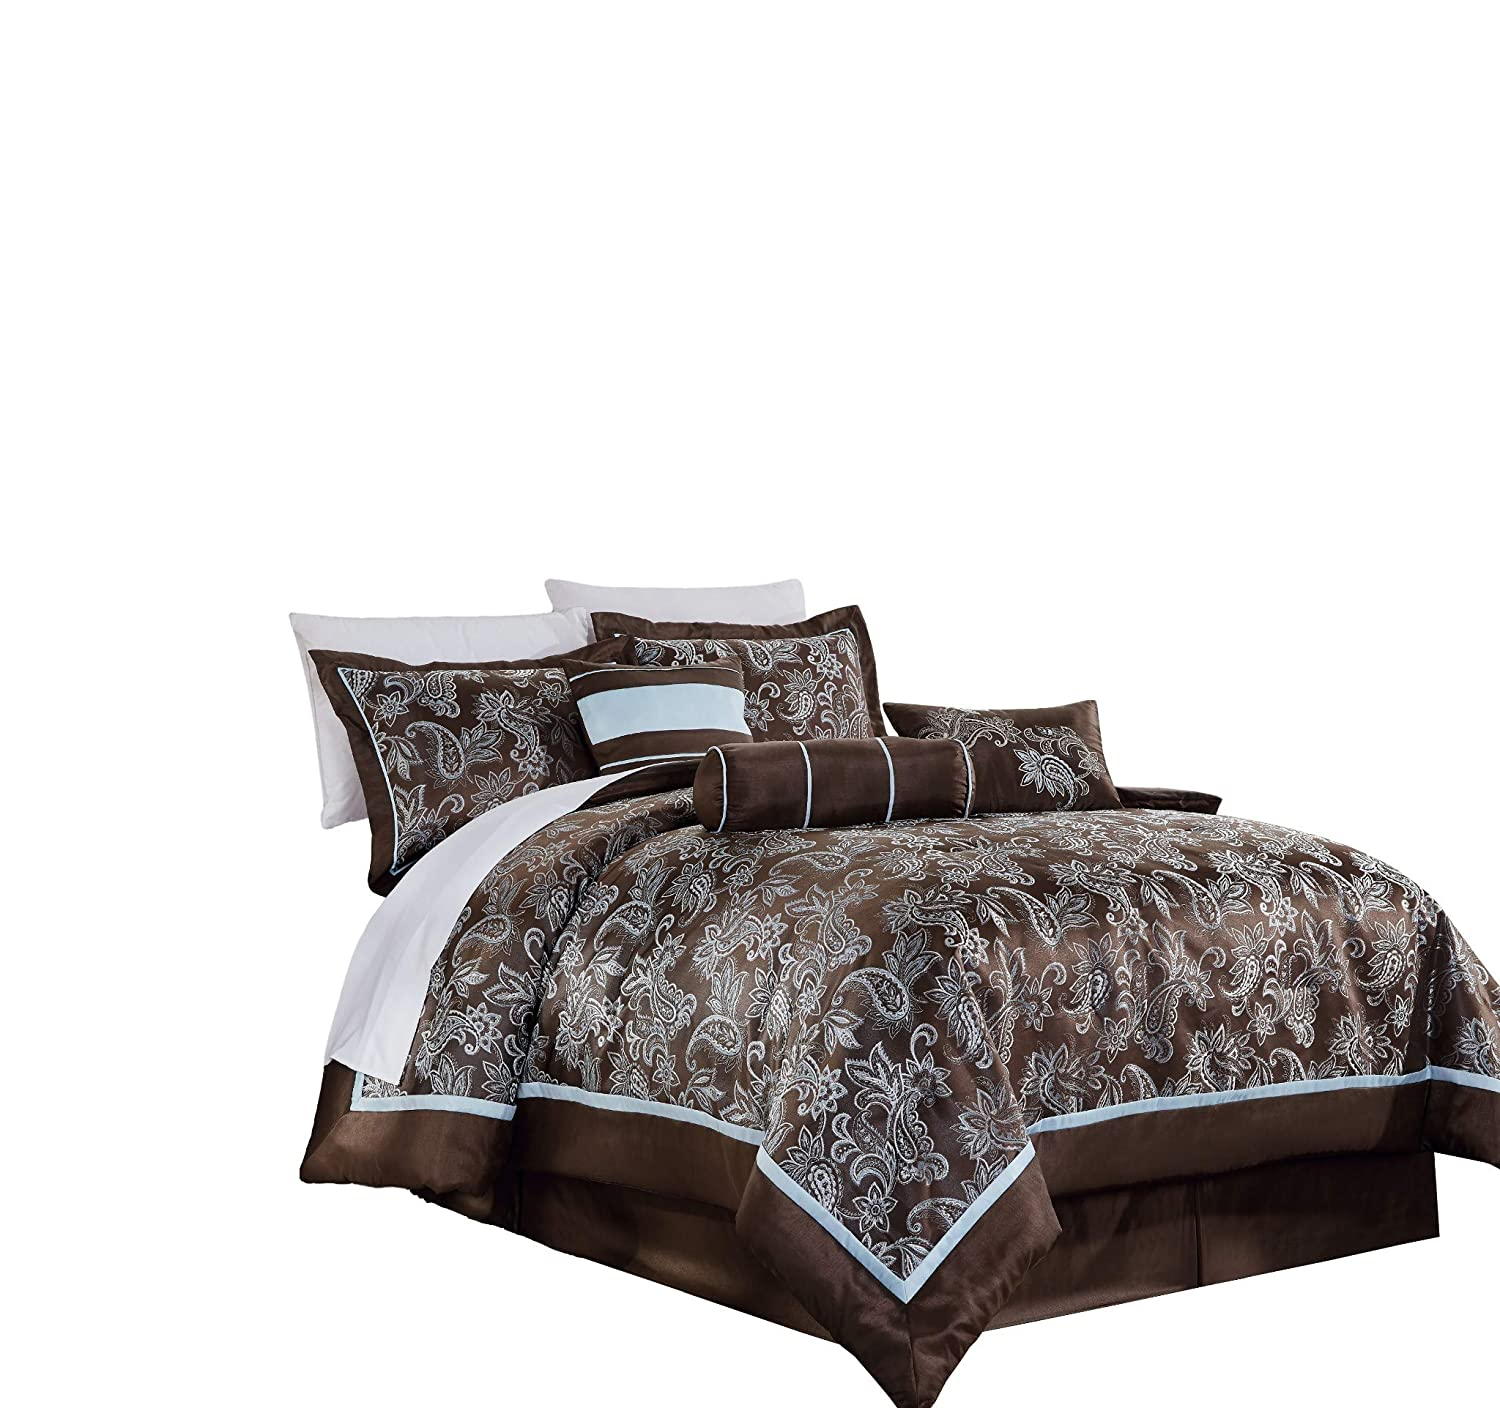 Chezmoi Collection Tuscany 7-Piece Blue Brown Paisley Floral Jacquard Comforter Bedding Set, King Size